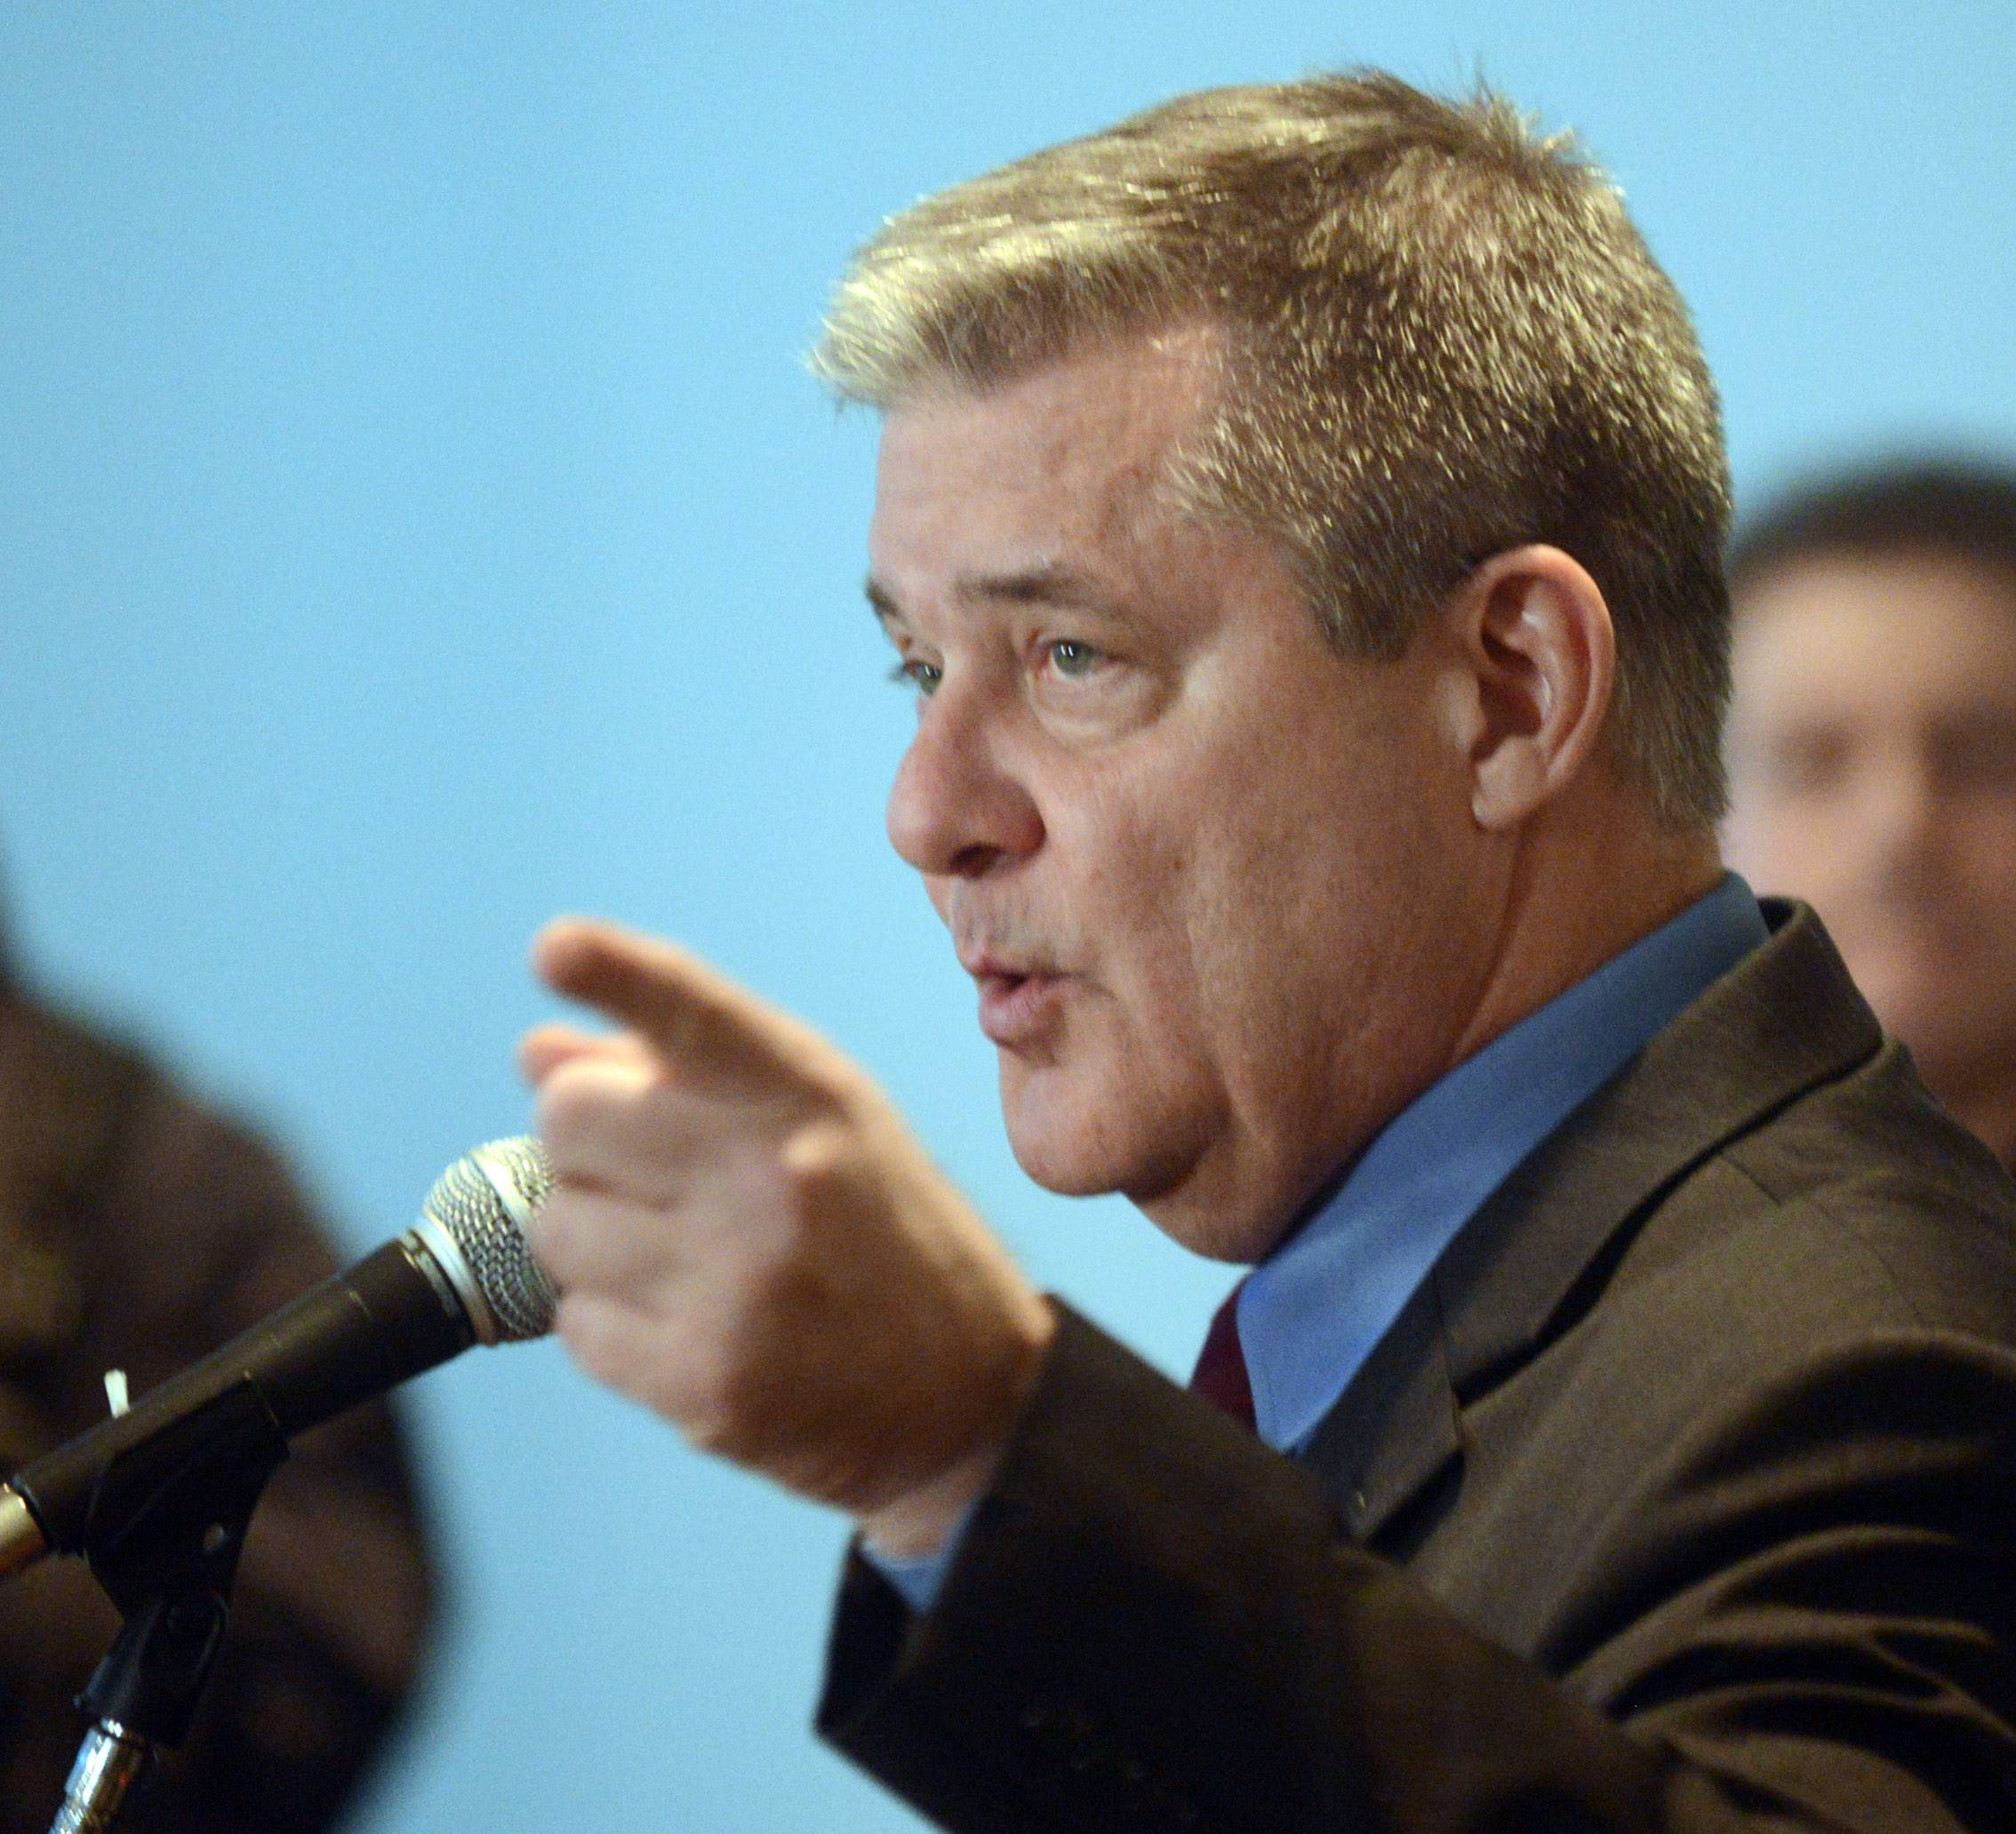 Illinois State Treasurer Dan Rutherford denies accusations against him during a news conference Monday in Schaumburg.